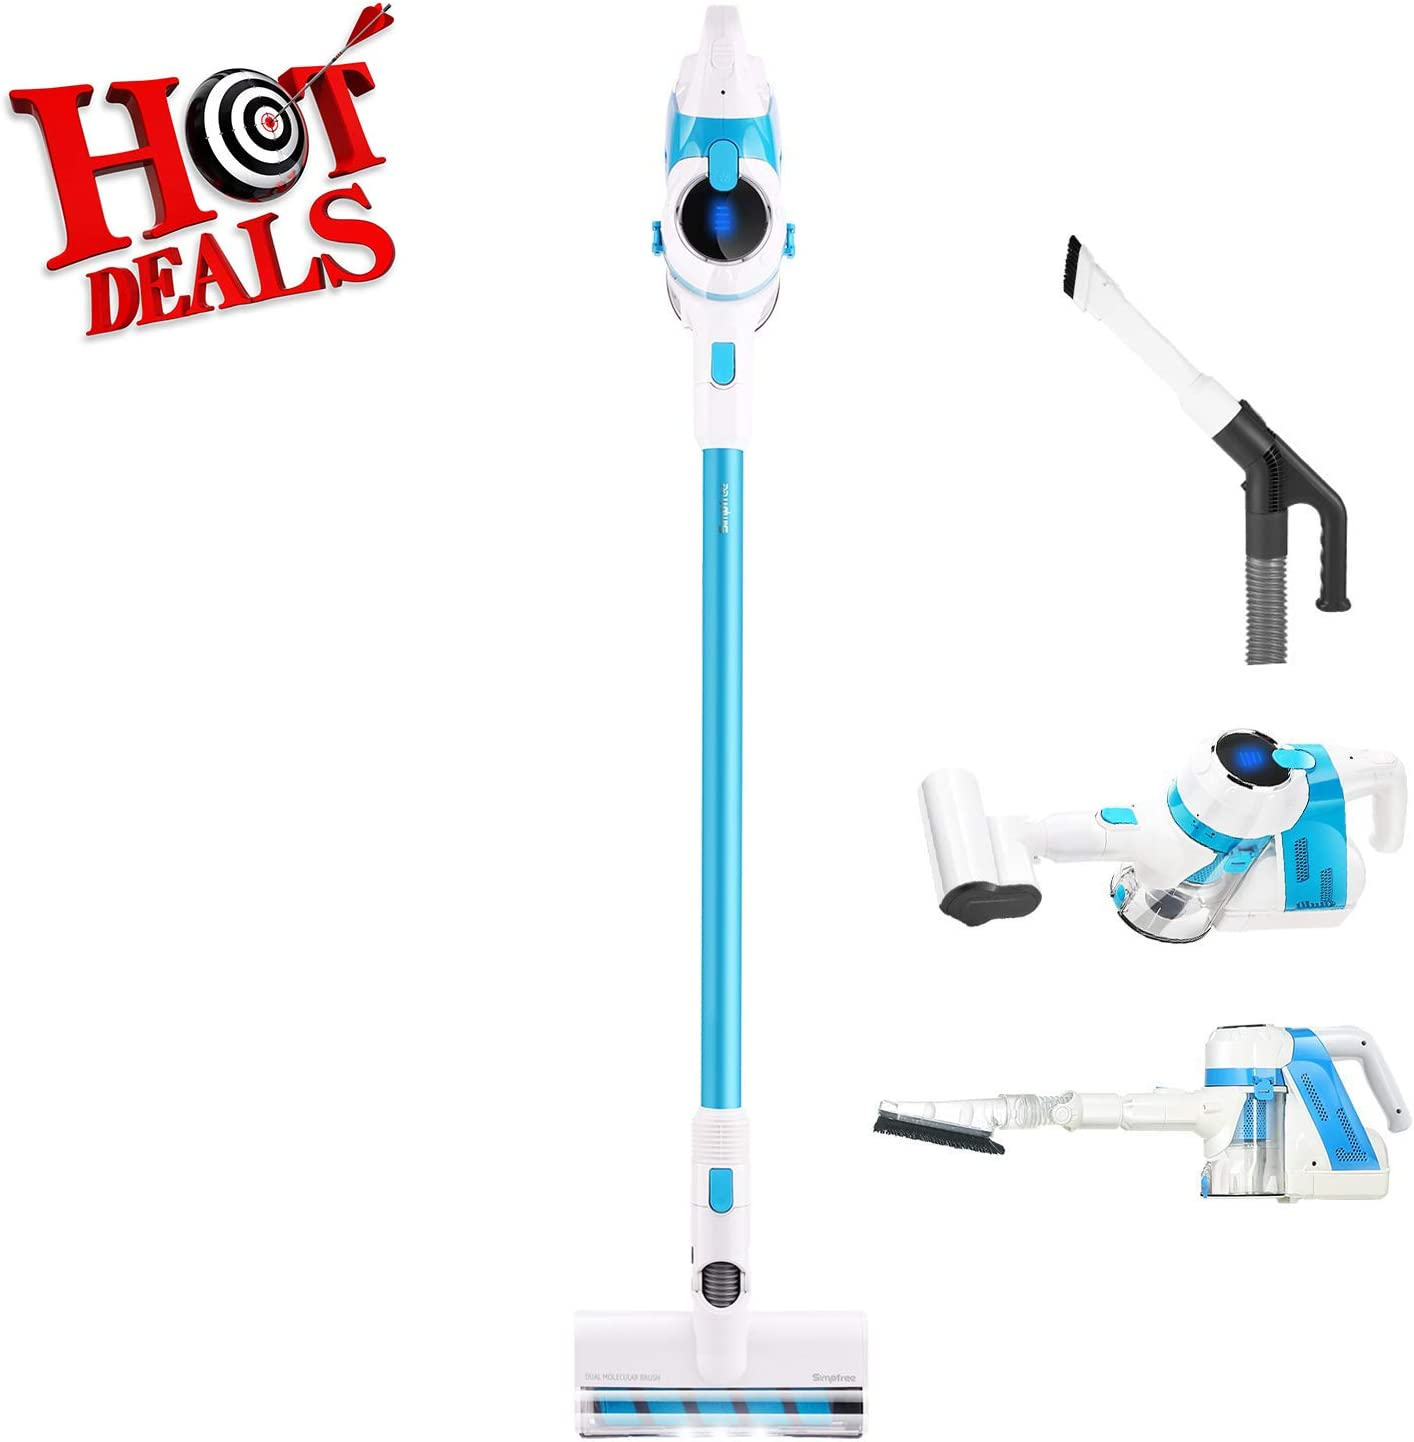 SIMPFREE Cordless Vacuum, Lightweight Cordless Stick Vacuum with Electric Hose & LED Brush, Hand Vacuum for Carpet & Hardfloor - 5 in 1 Vacuum, Free Two Rechargeable Lithium Ion Battery